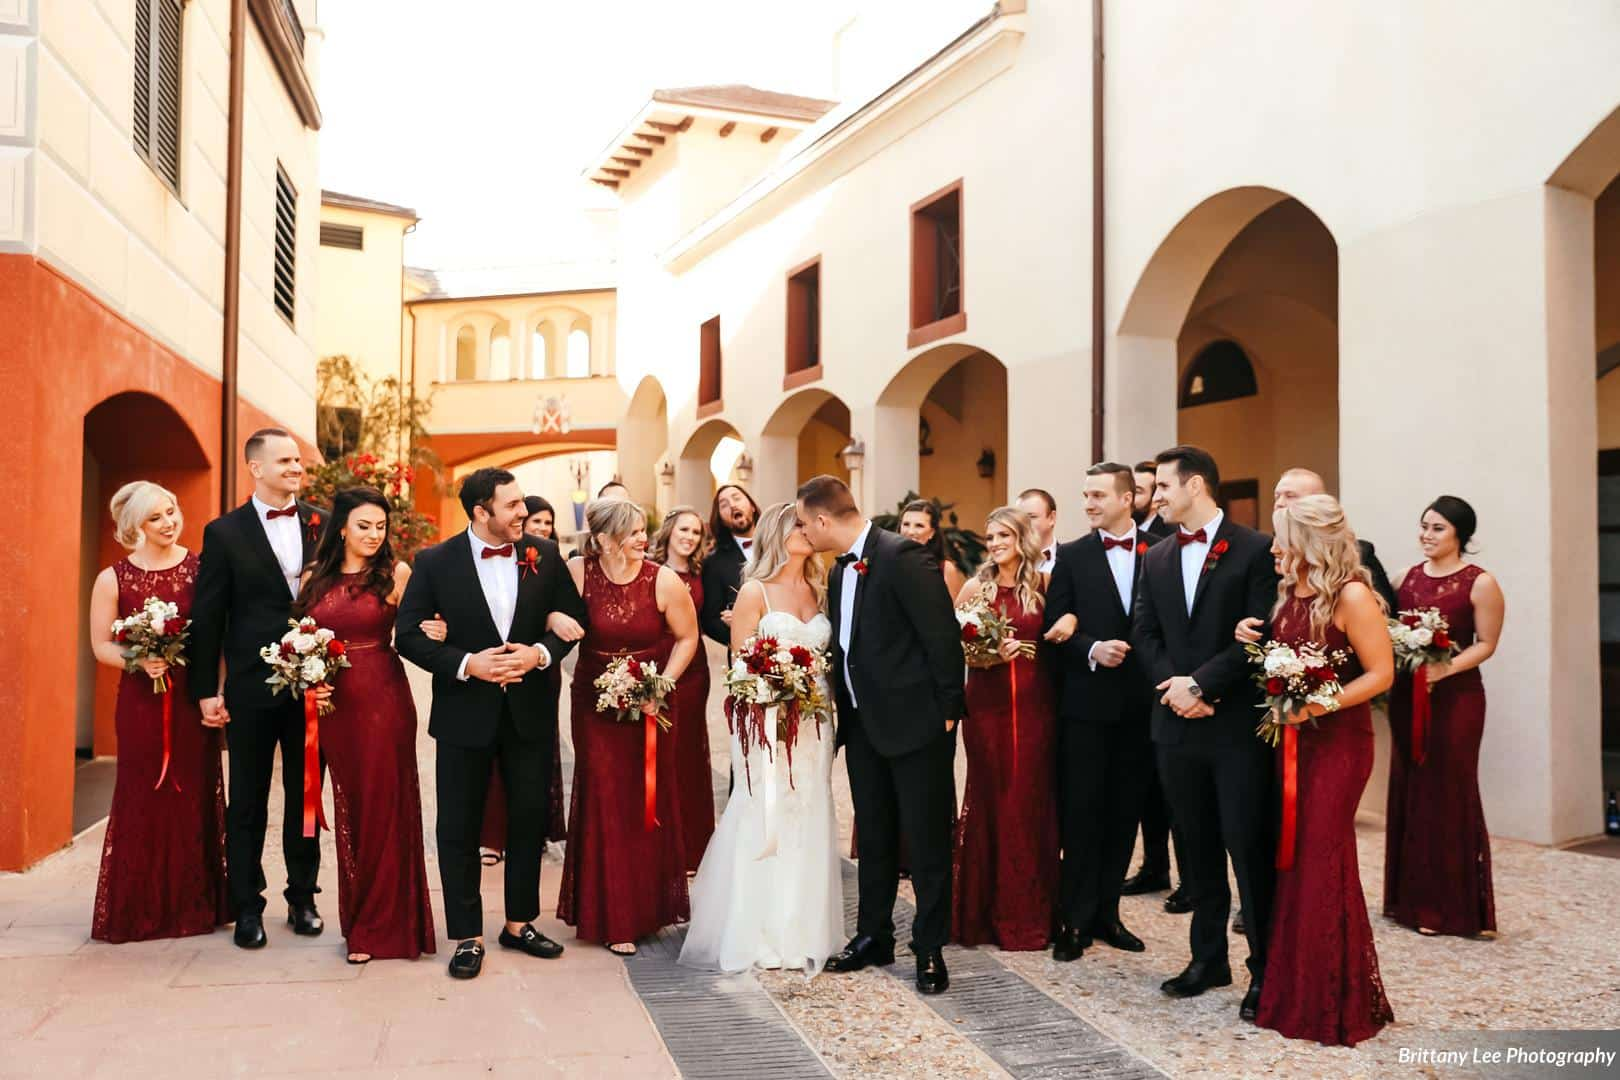 Alex and Kim celebrated their love with a beautiful ceremony at Portofino Bay Hotel.